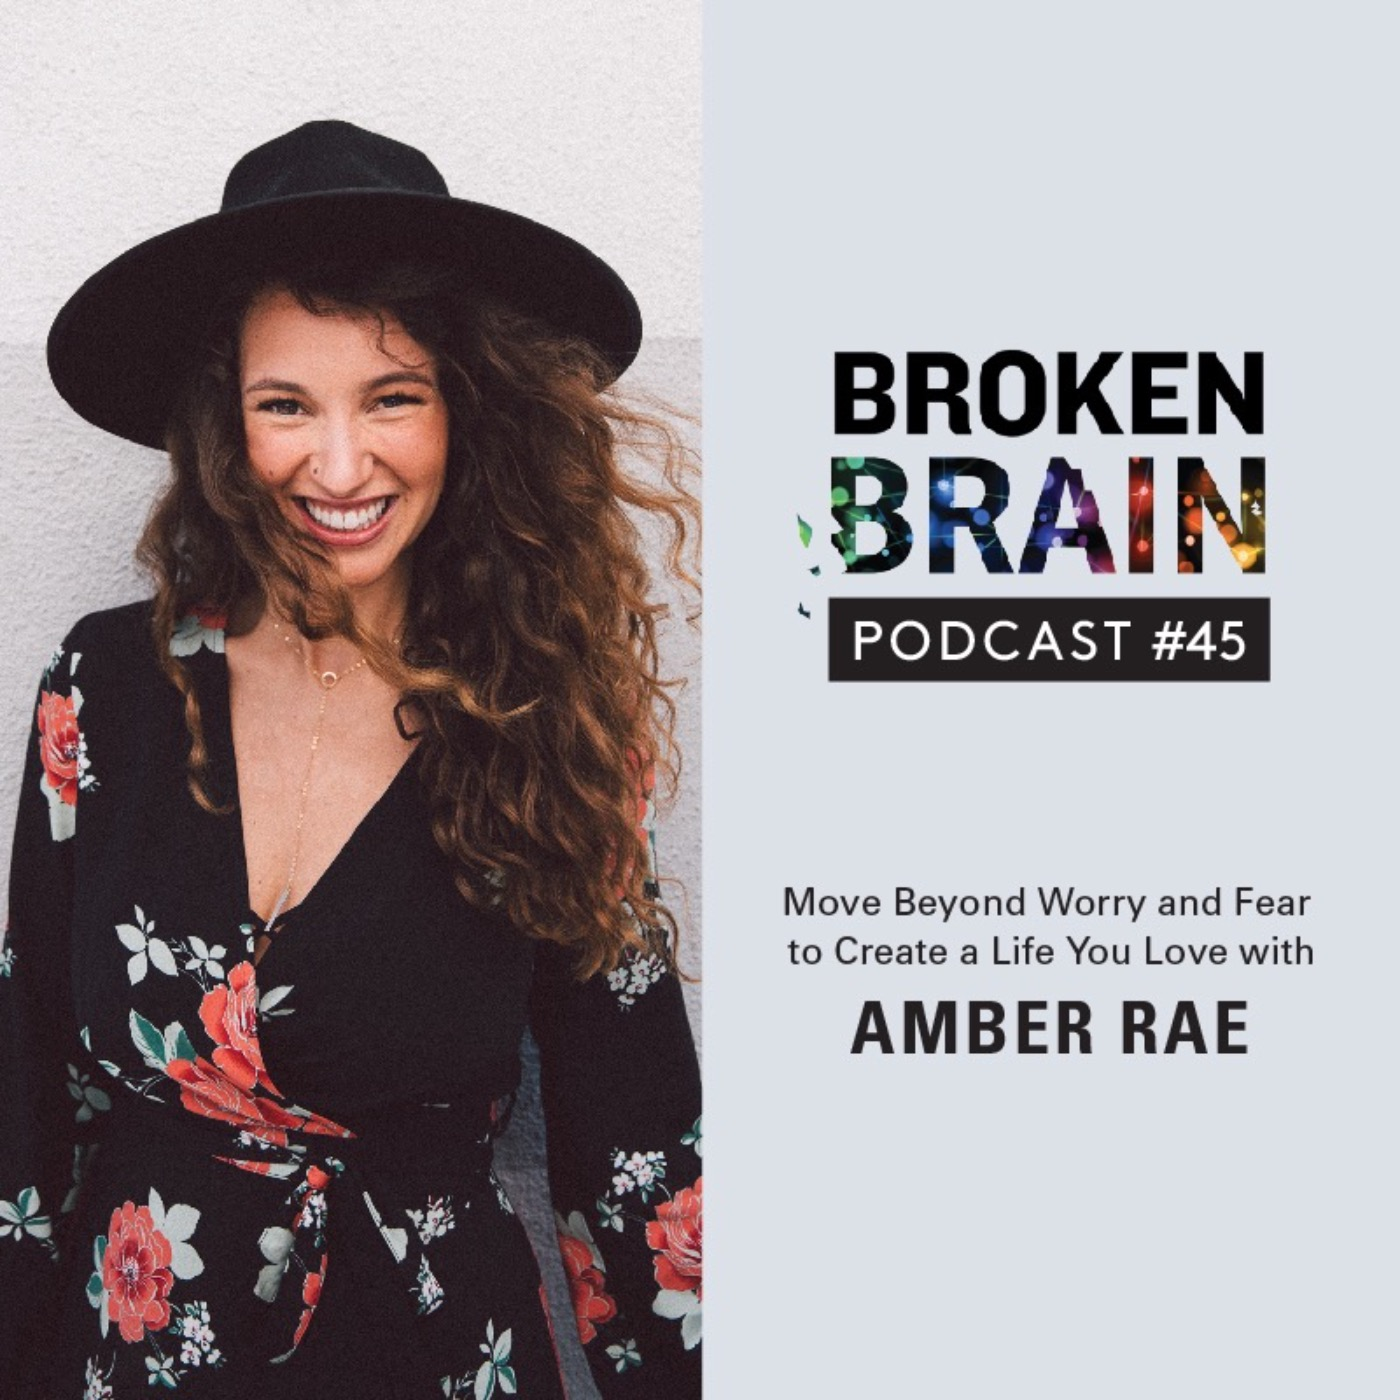 #45: Move Beyond Worry and Fear to Create a Life You Love with Amber Rae